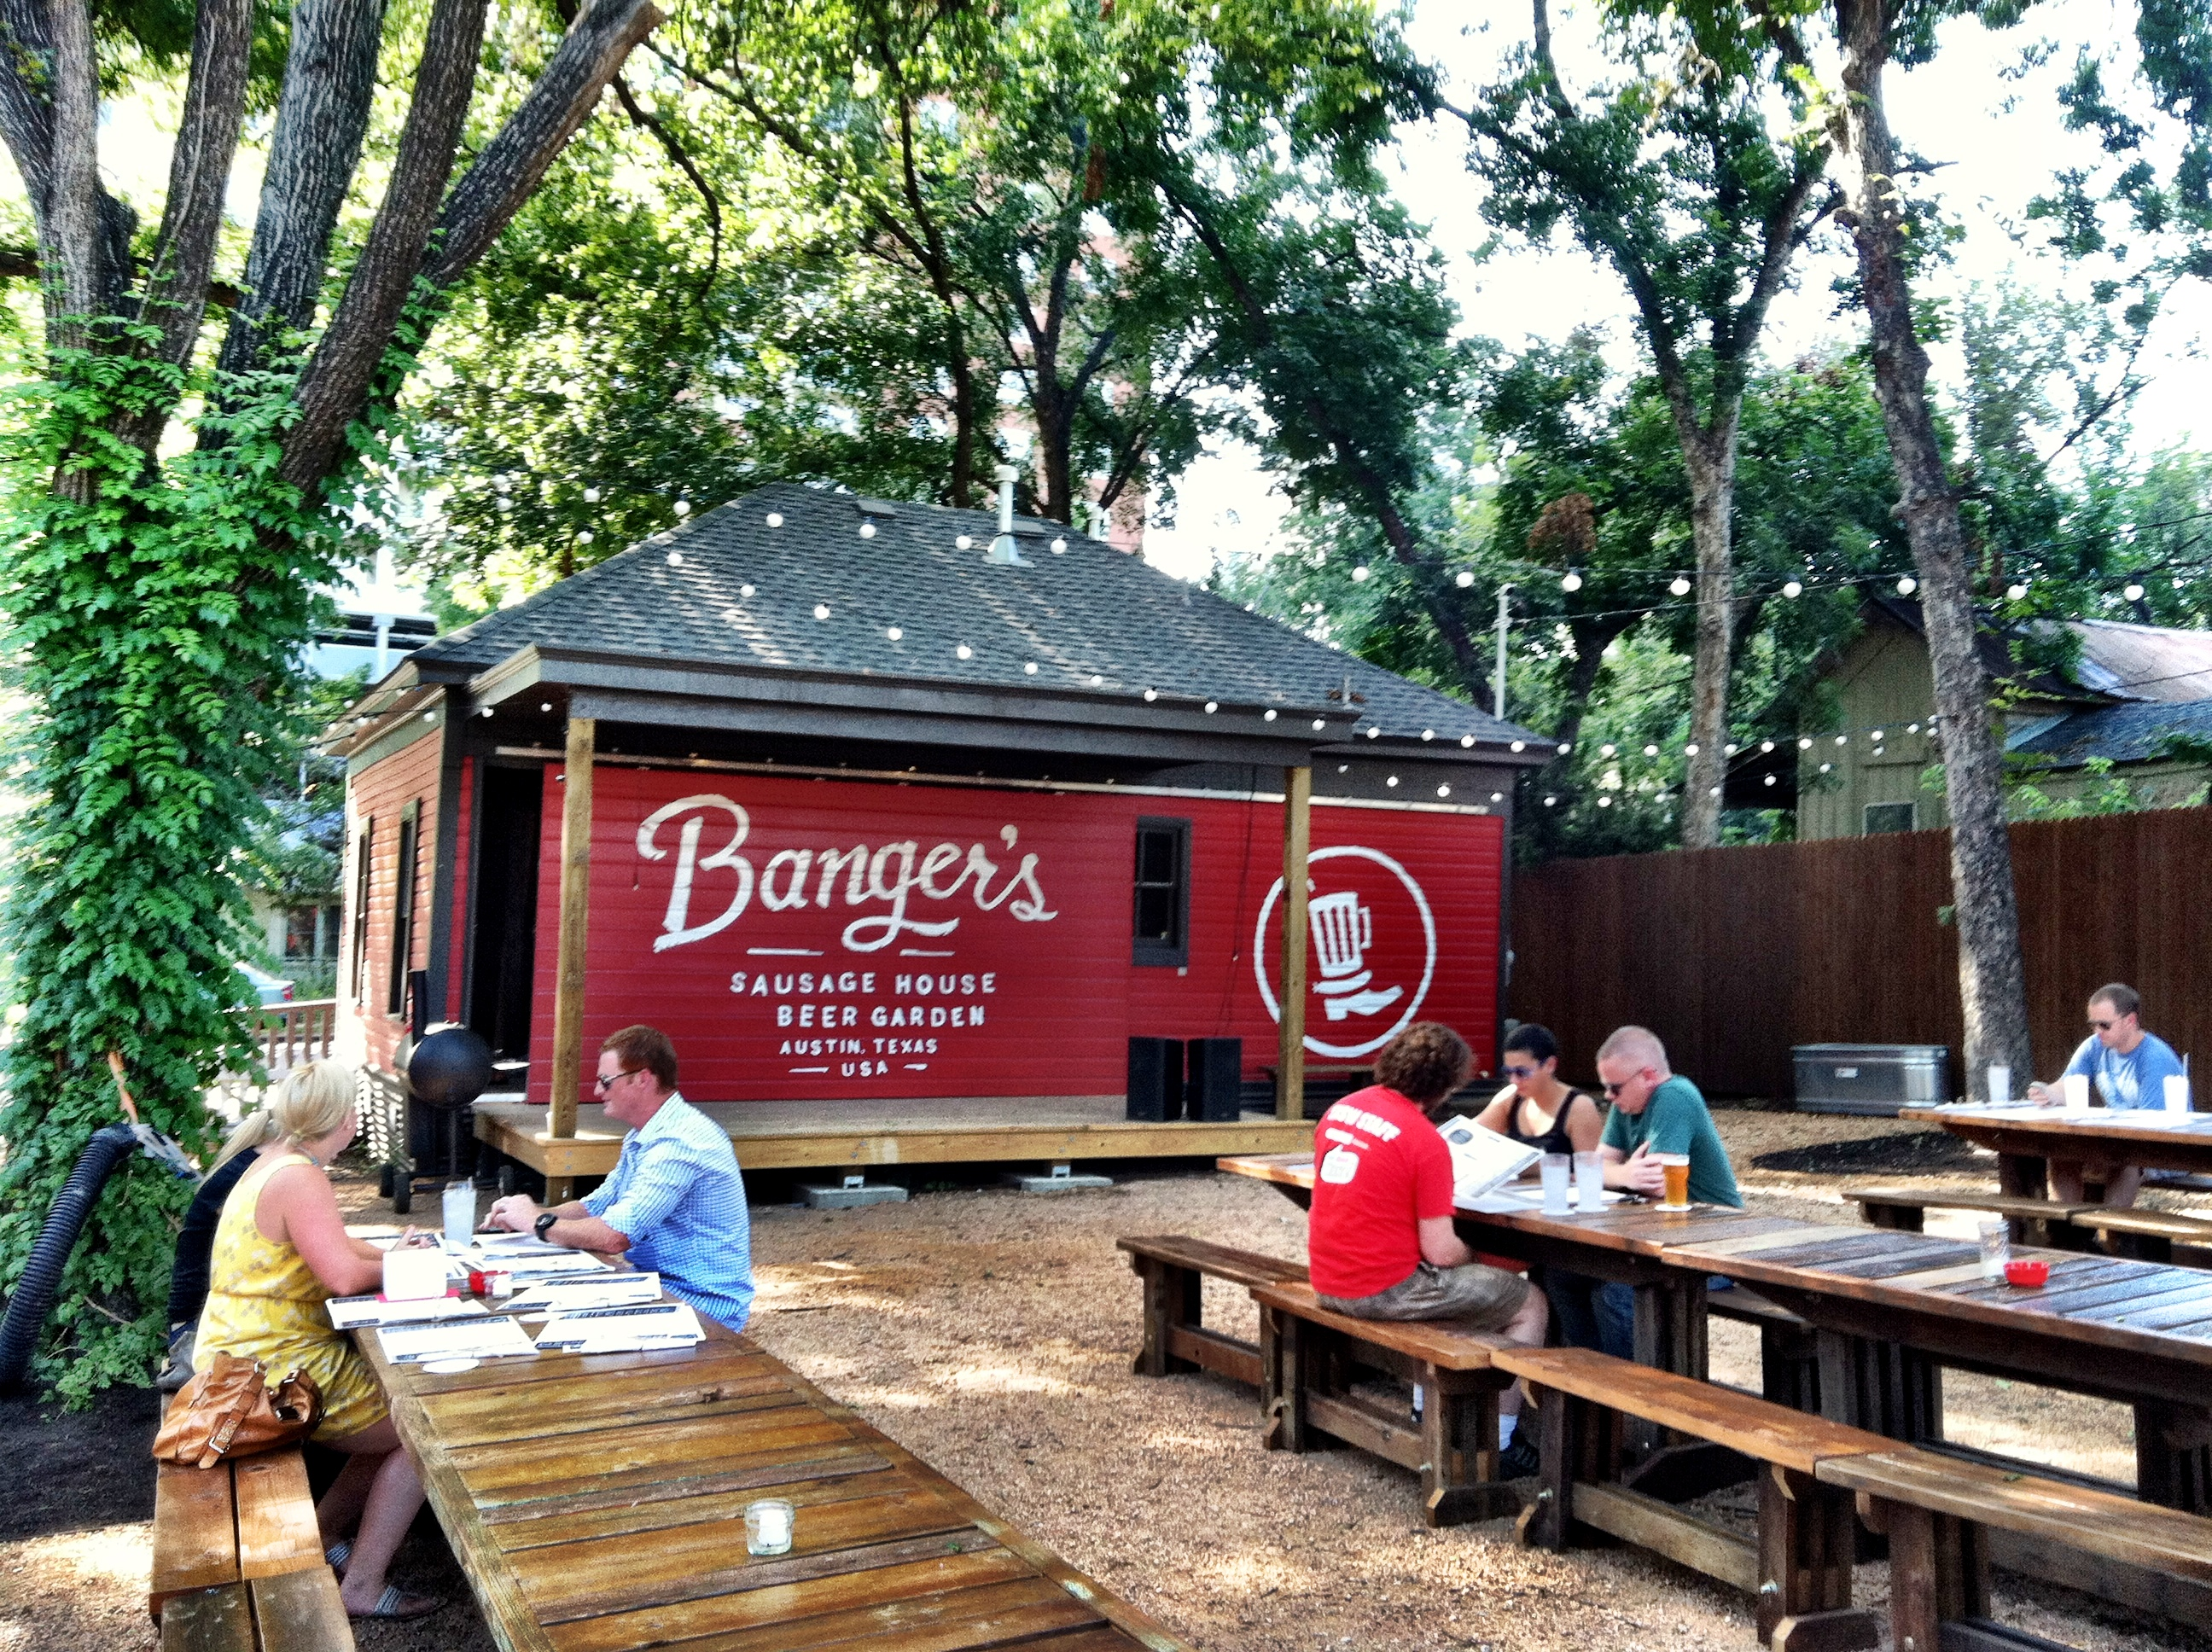 outside garage wall ideas - Genius Tap Banger's Sausage House & Beer Garden